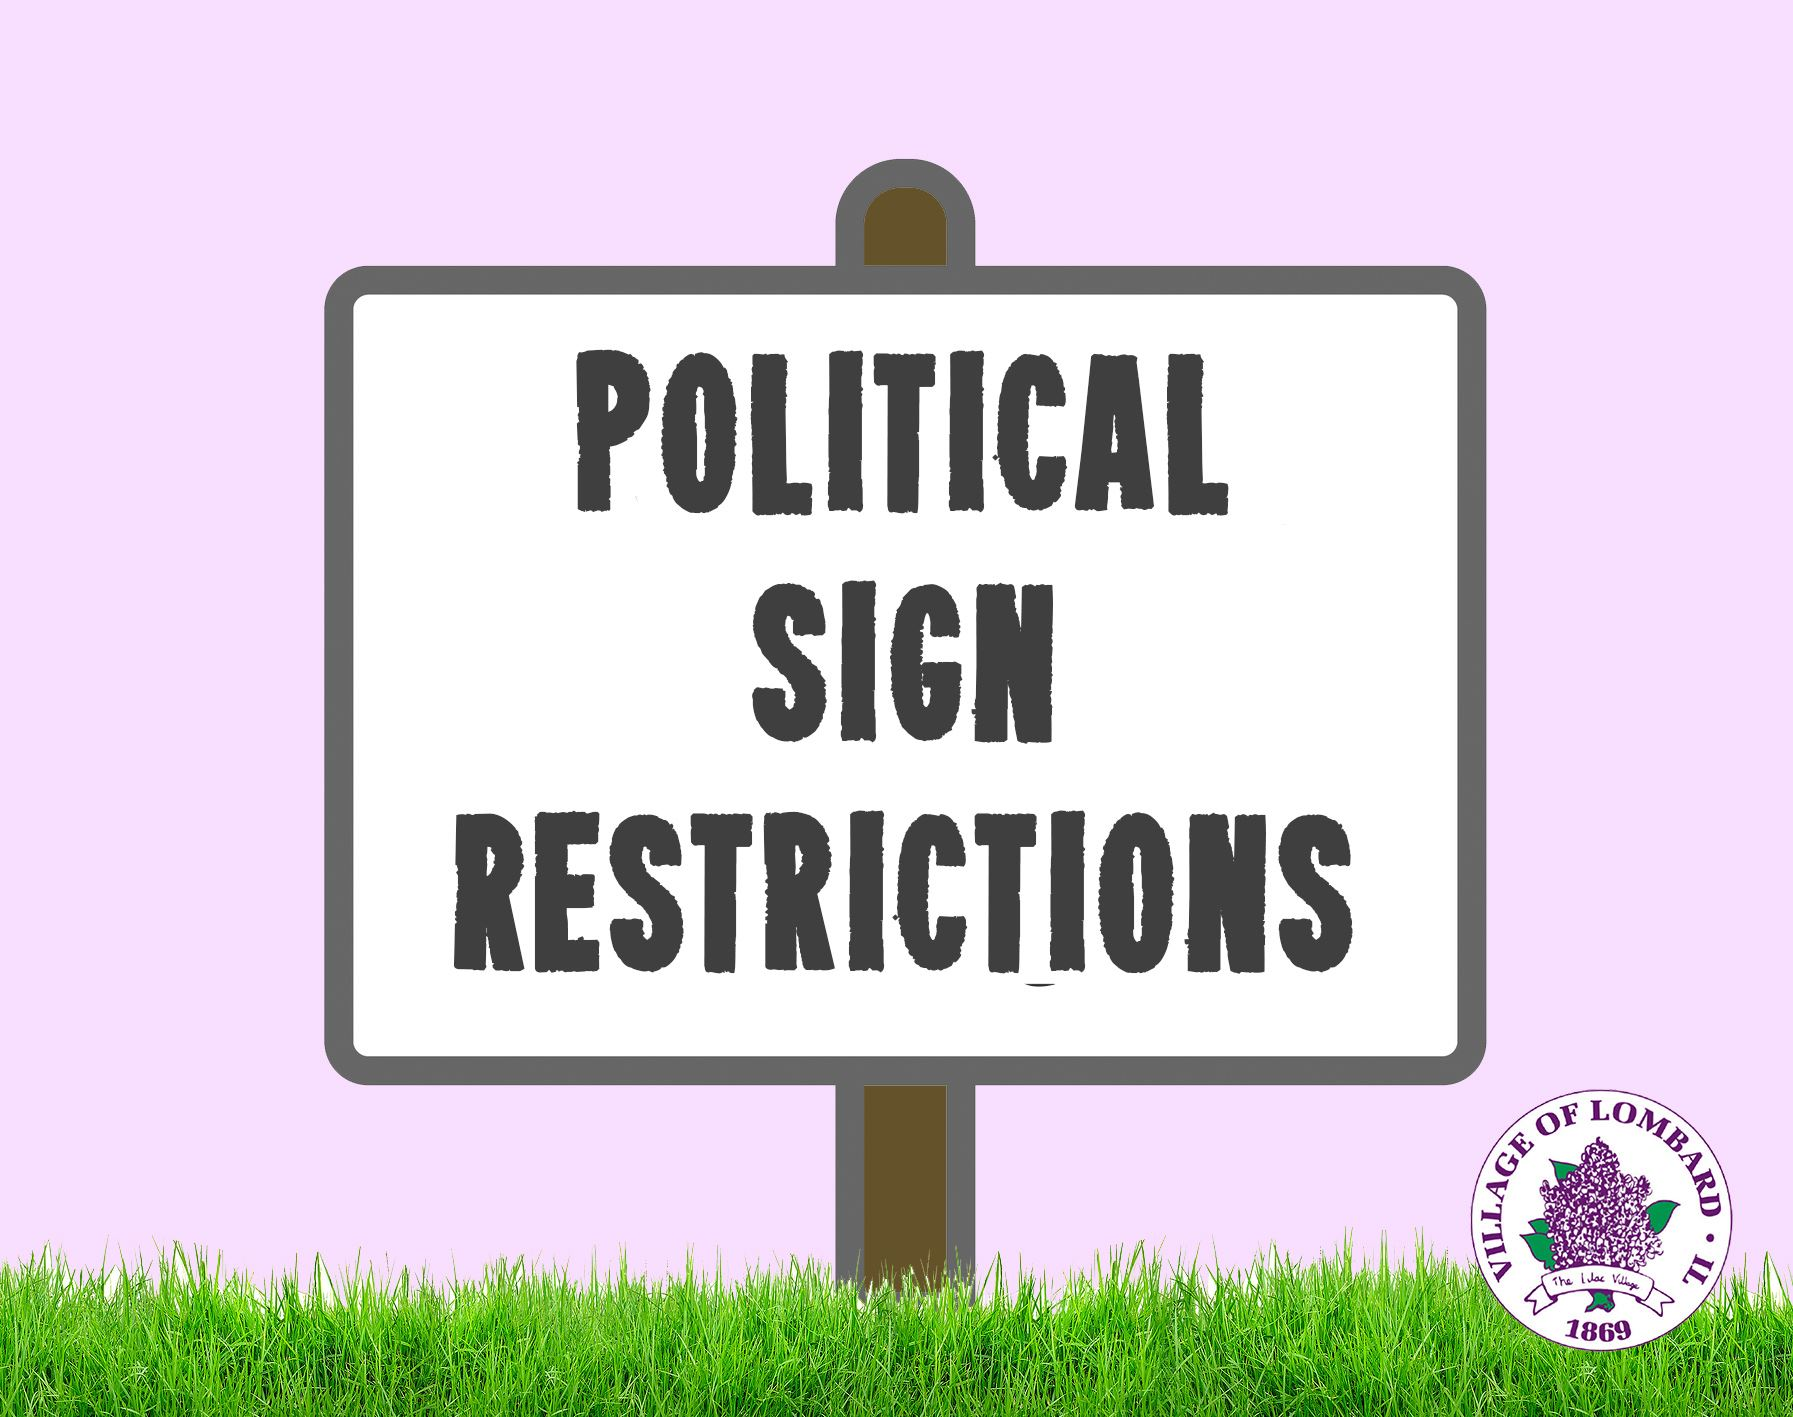 Political sign restrictions news item